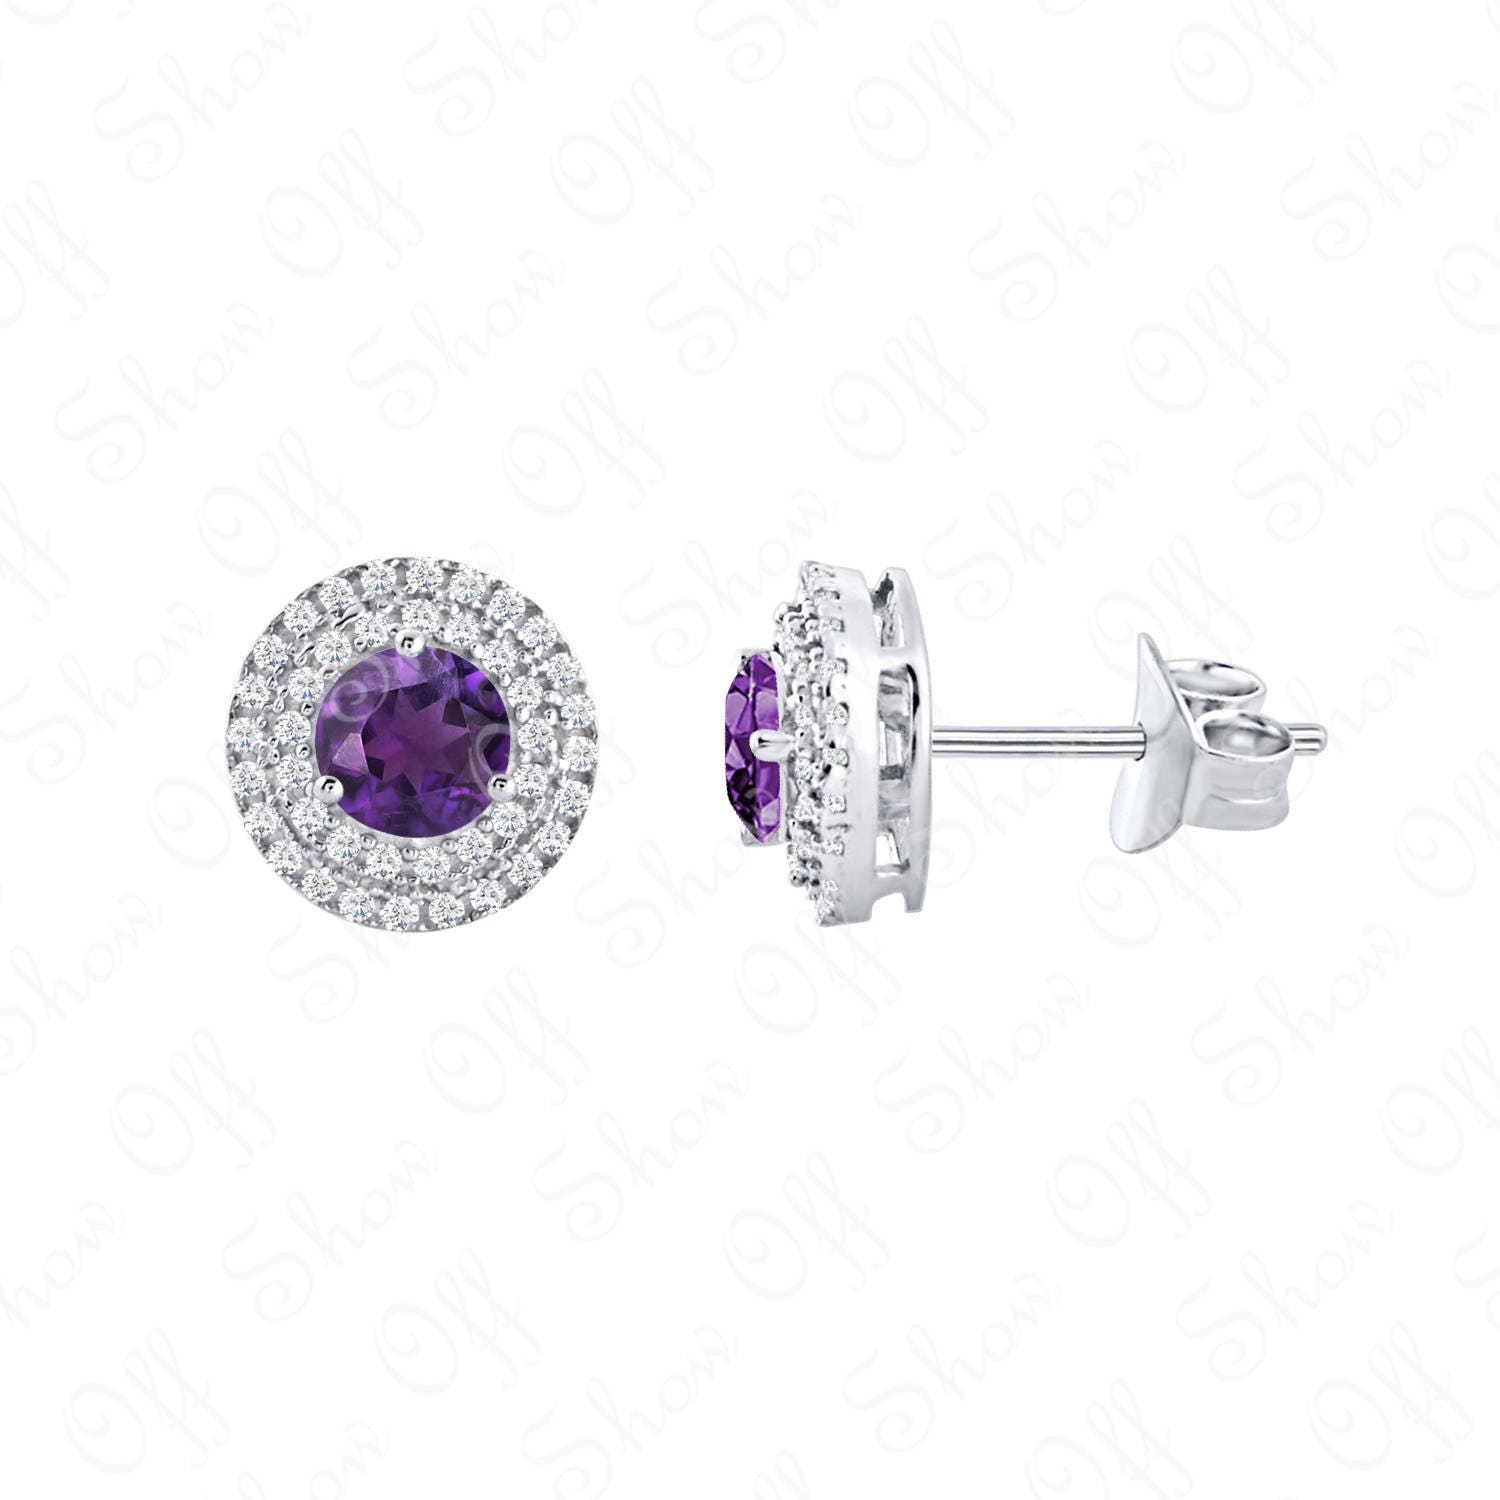 HALO ROUND STUD EARRINGS 14K WHITE GOLD FN 925 STERLING SILVER CHRISTMAS GIFT CZ